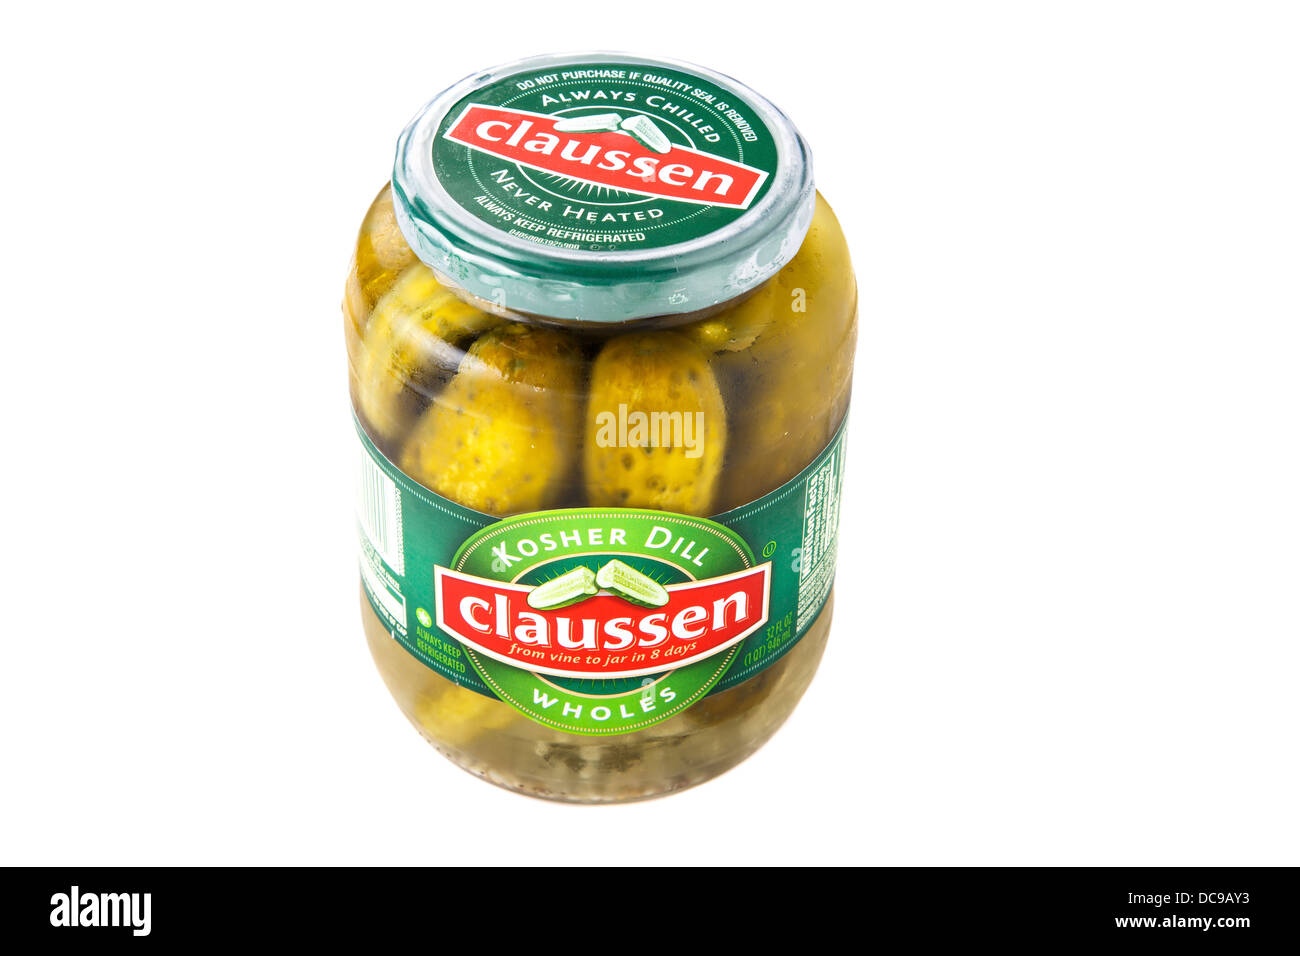 A jar of Claussen whole kosher dill pickles isolated on whtie background - Stock Image